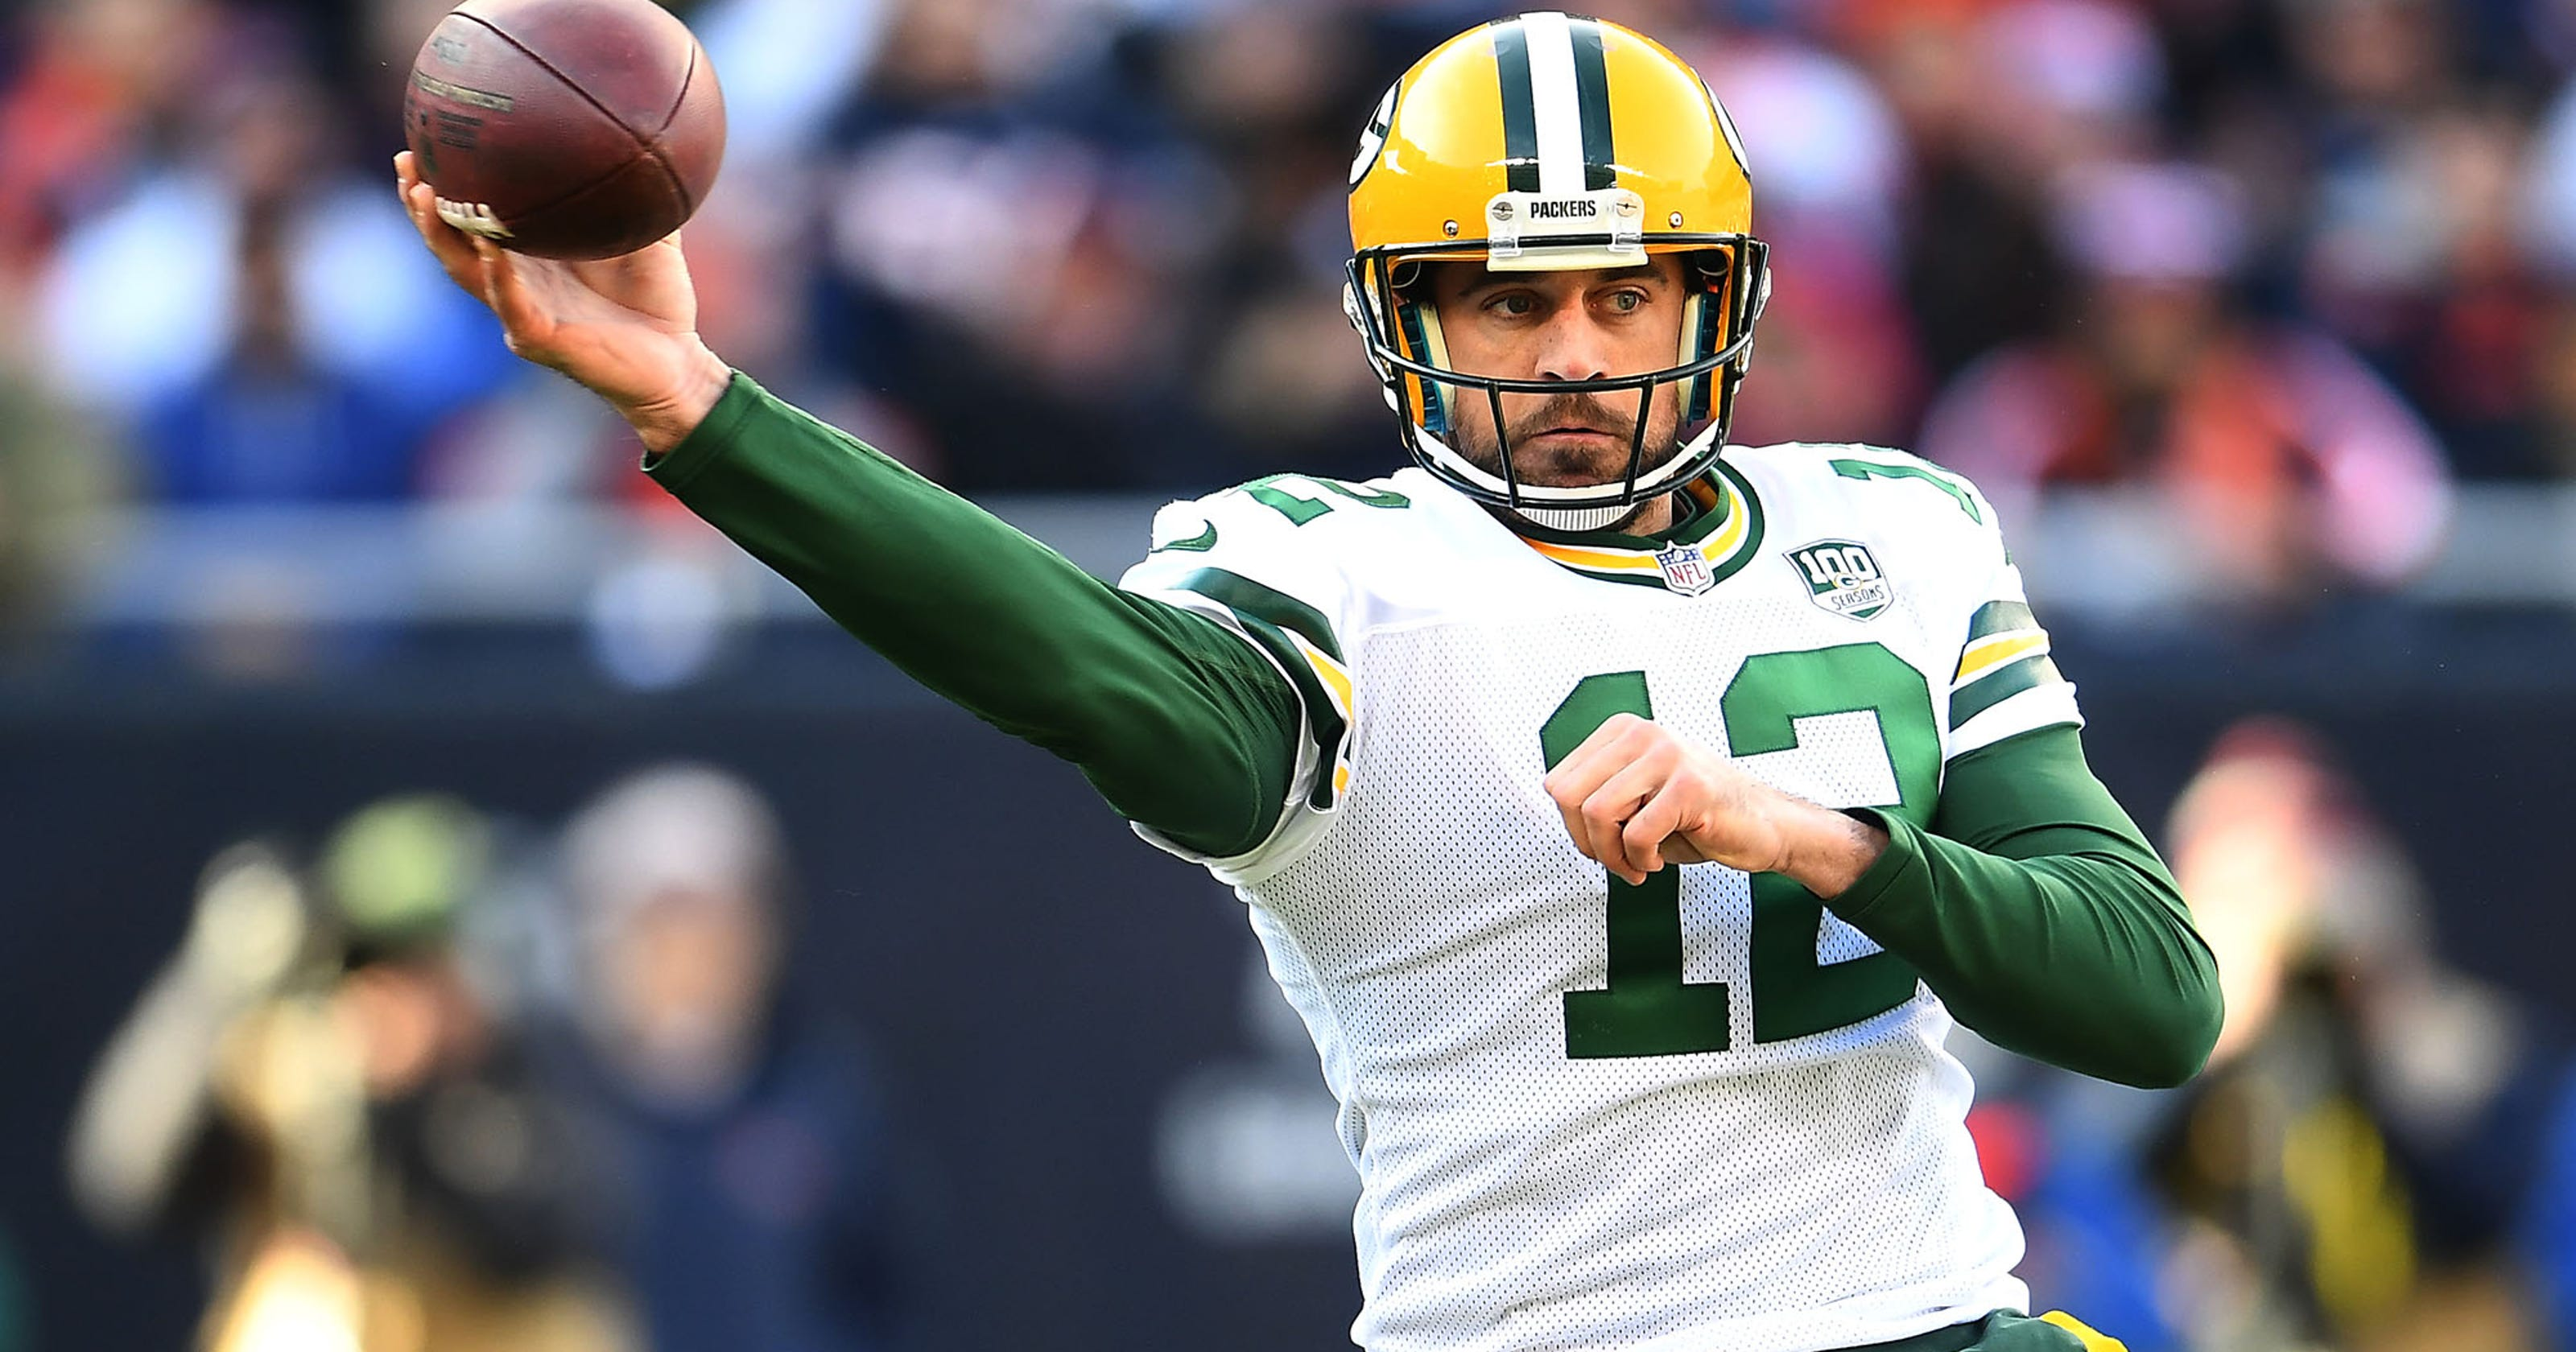 b1c157472 Jets excited for  awesome  challenge of facing Packers  Aaron Rodgers